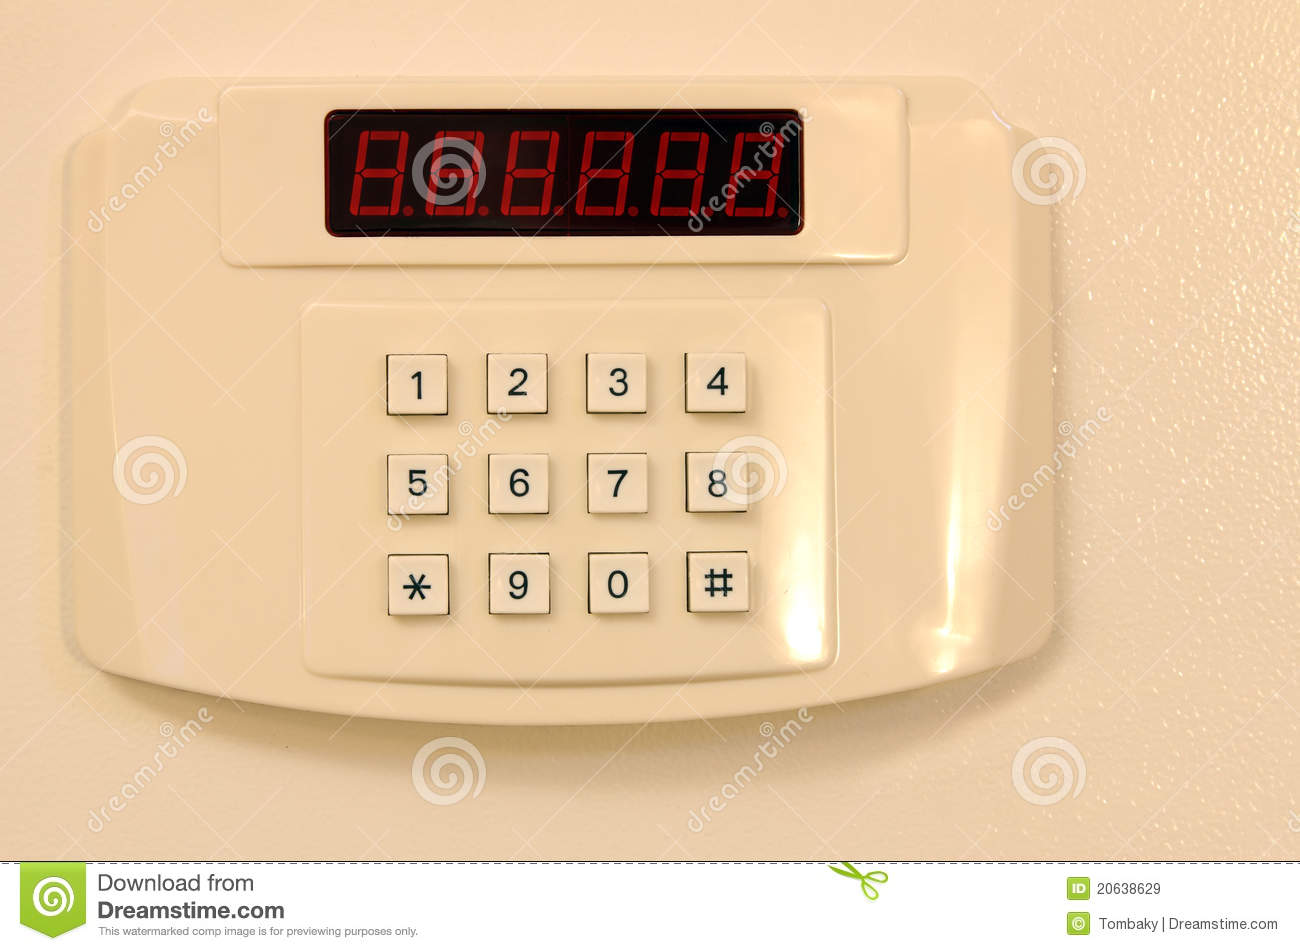 Home or hotel wall safe with keypad